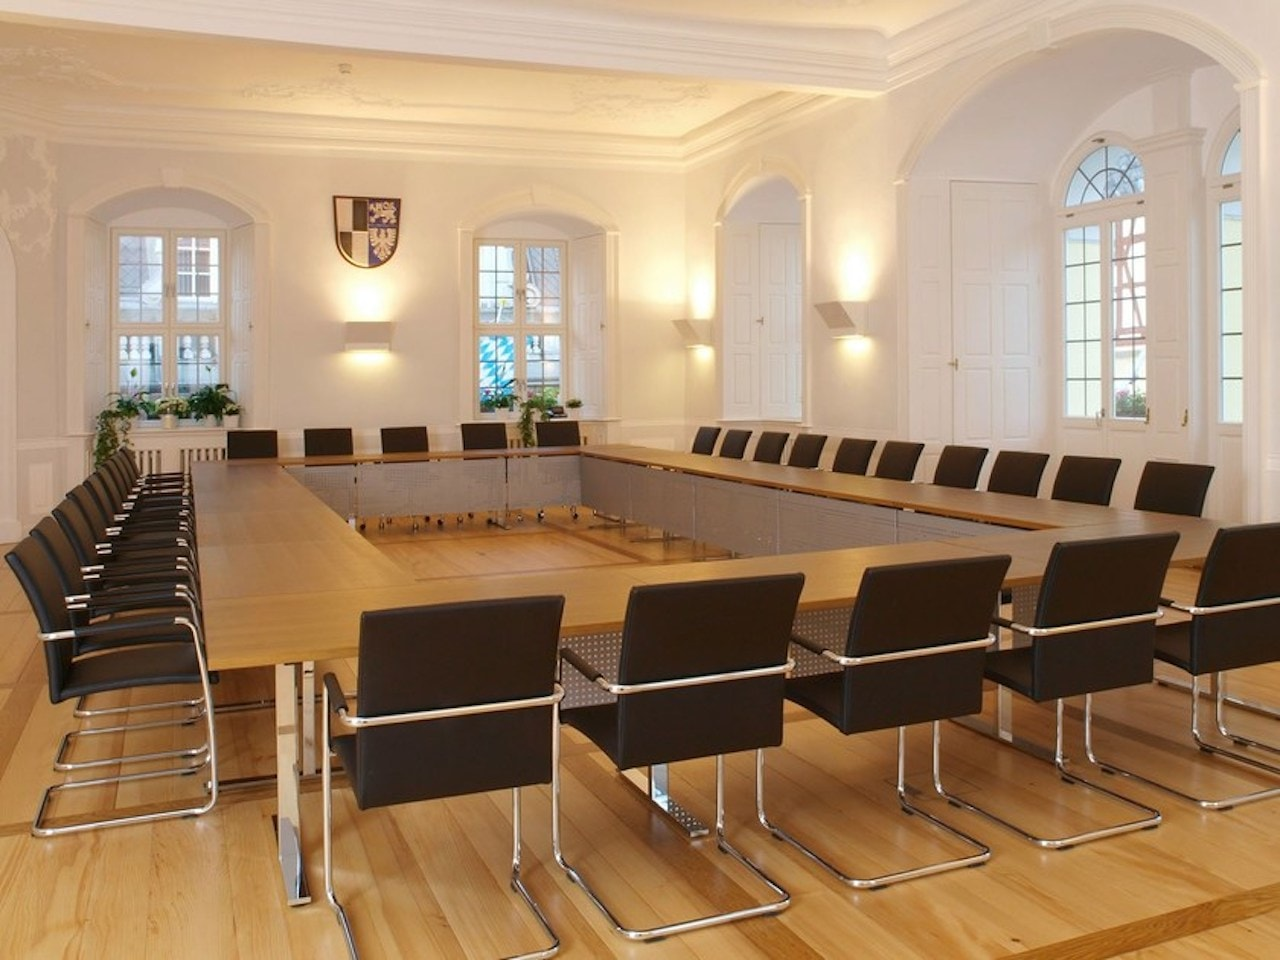 b_intra-rectangular-conference-table-spiegels-173923-rel4900ff6c